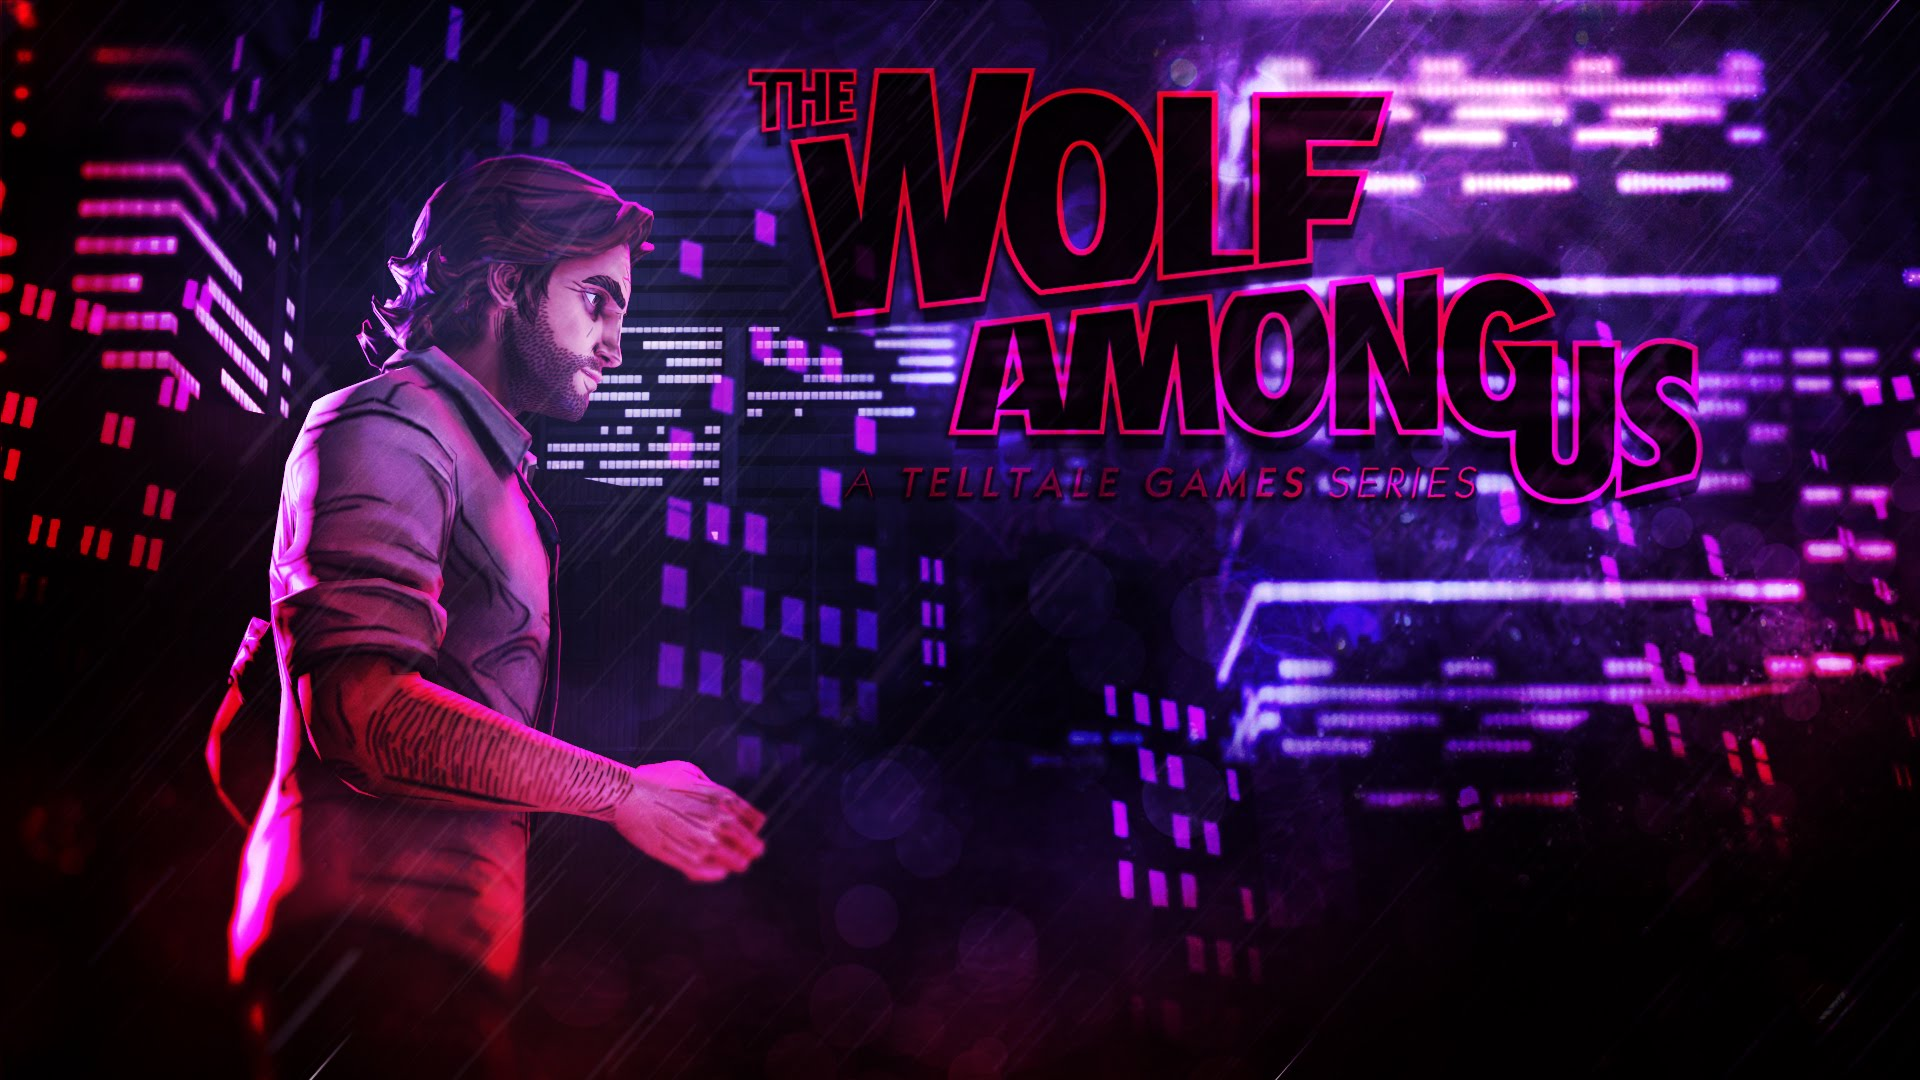 The Wolf Among Us Desktop Wallpaper